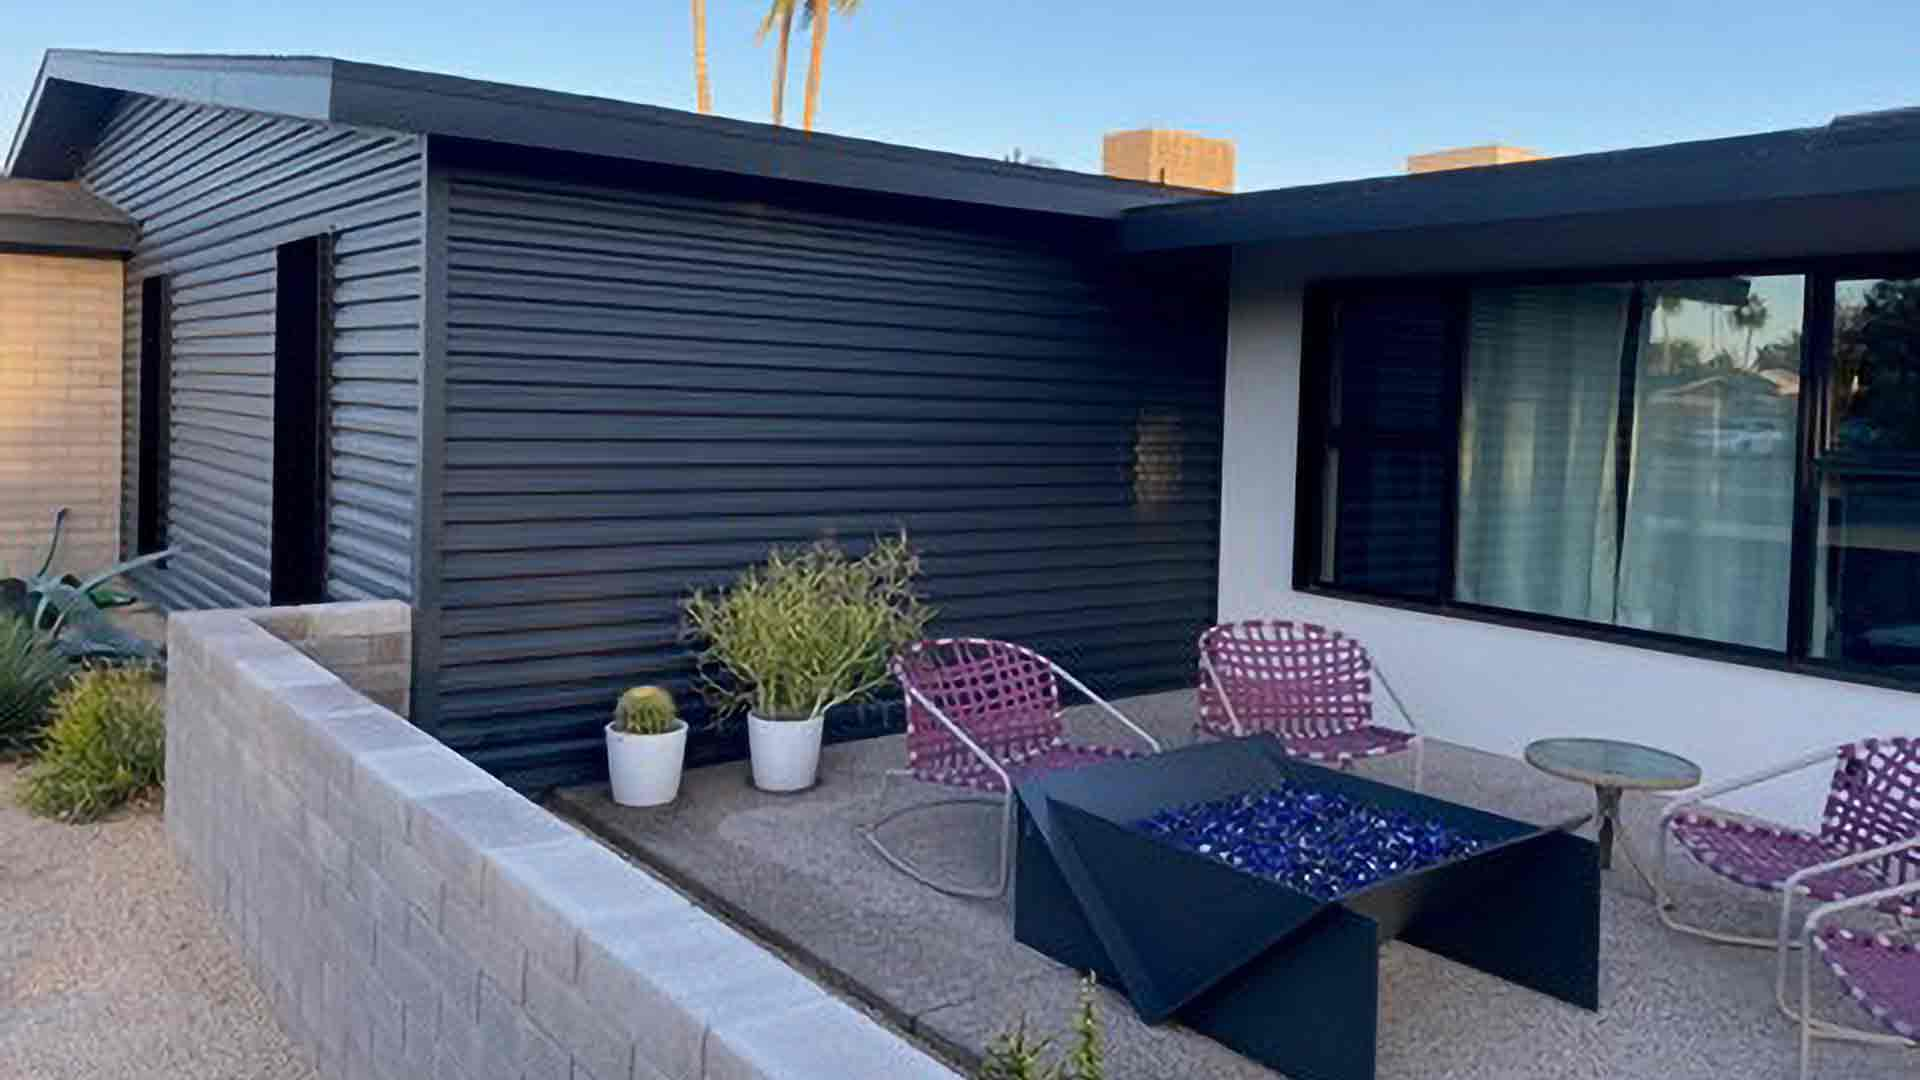 Vertical vs. Horizontal Metal Siding: Which Is Better?